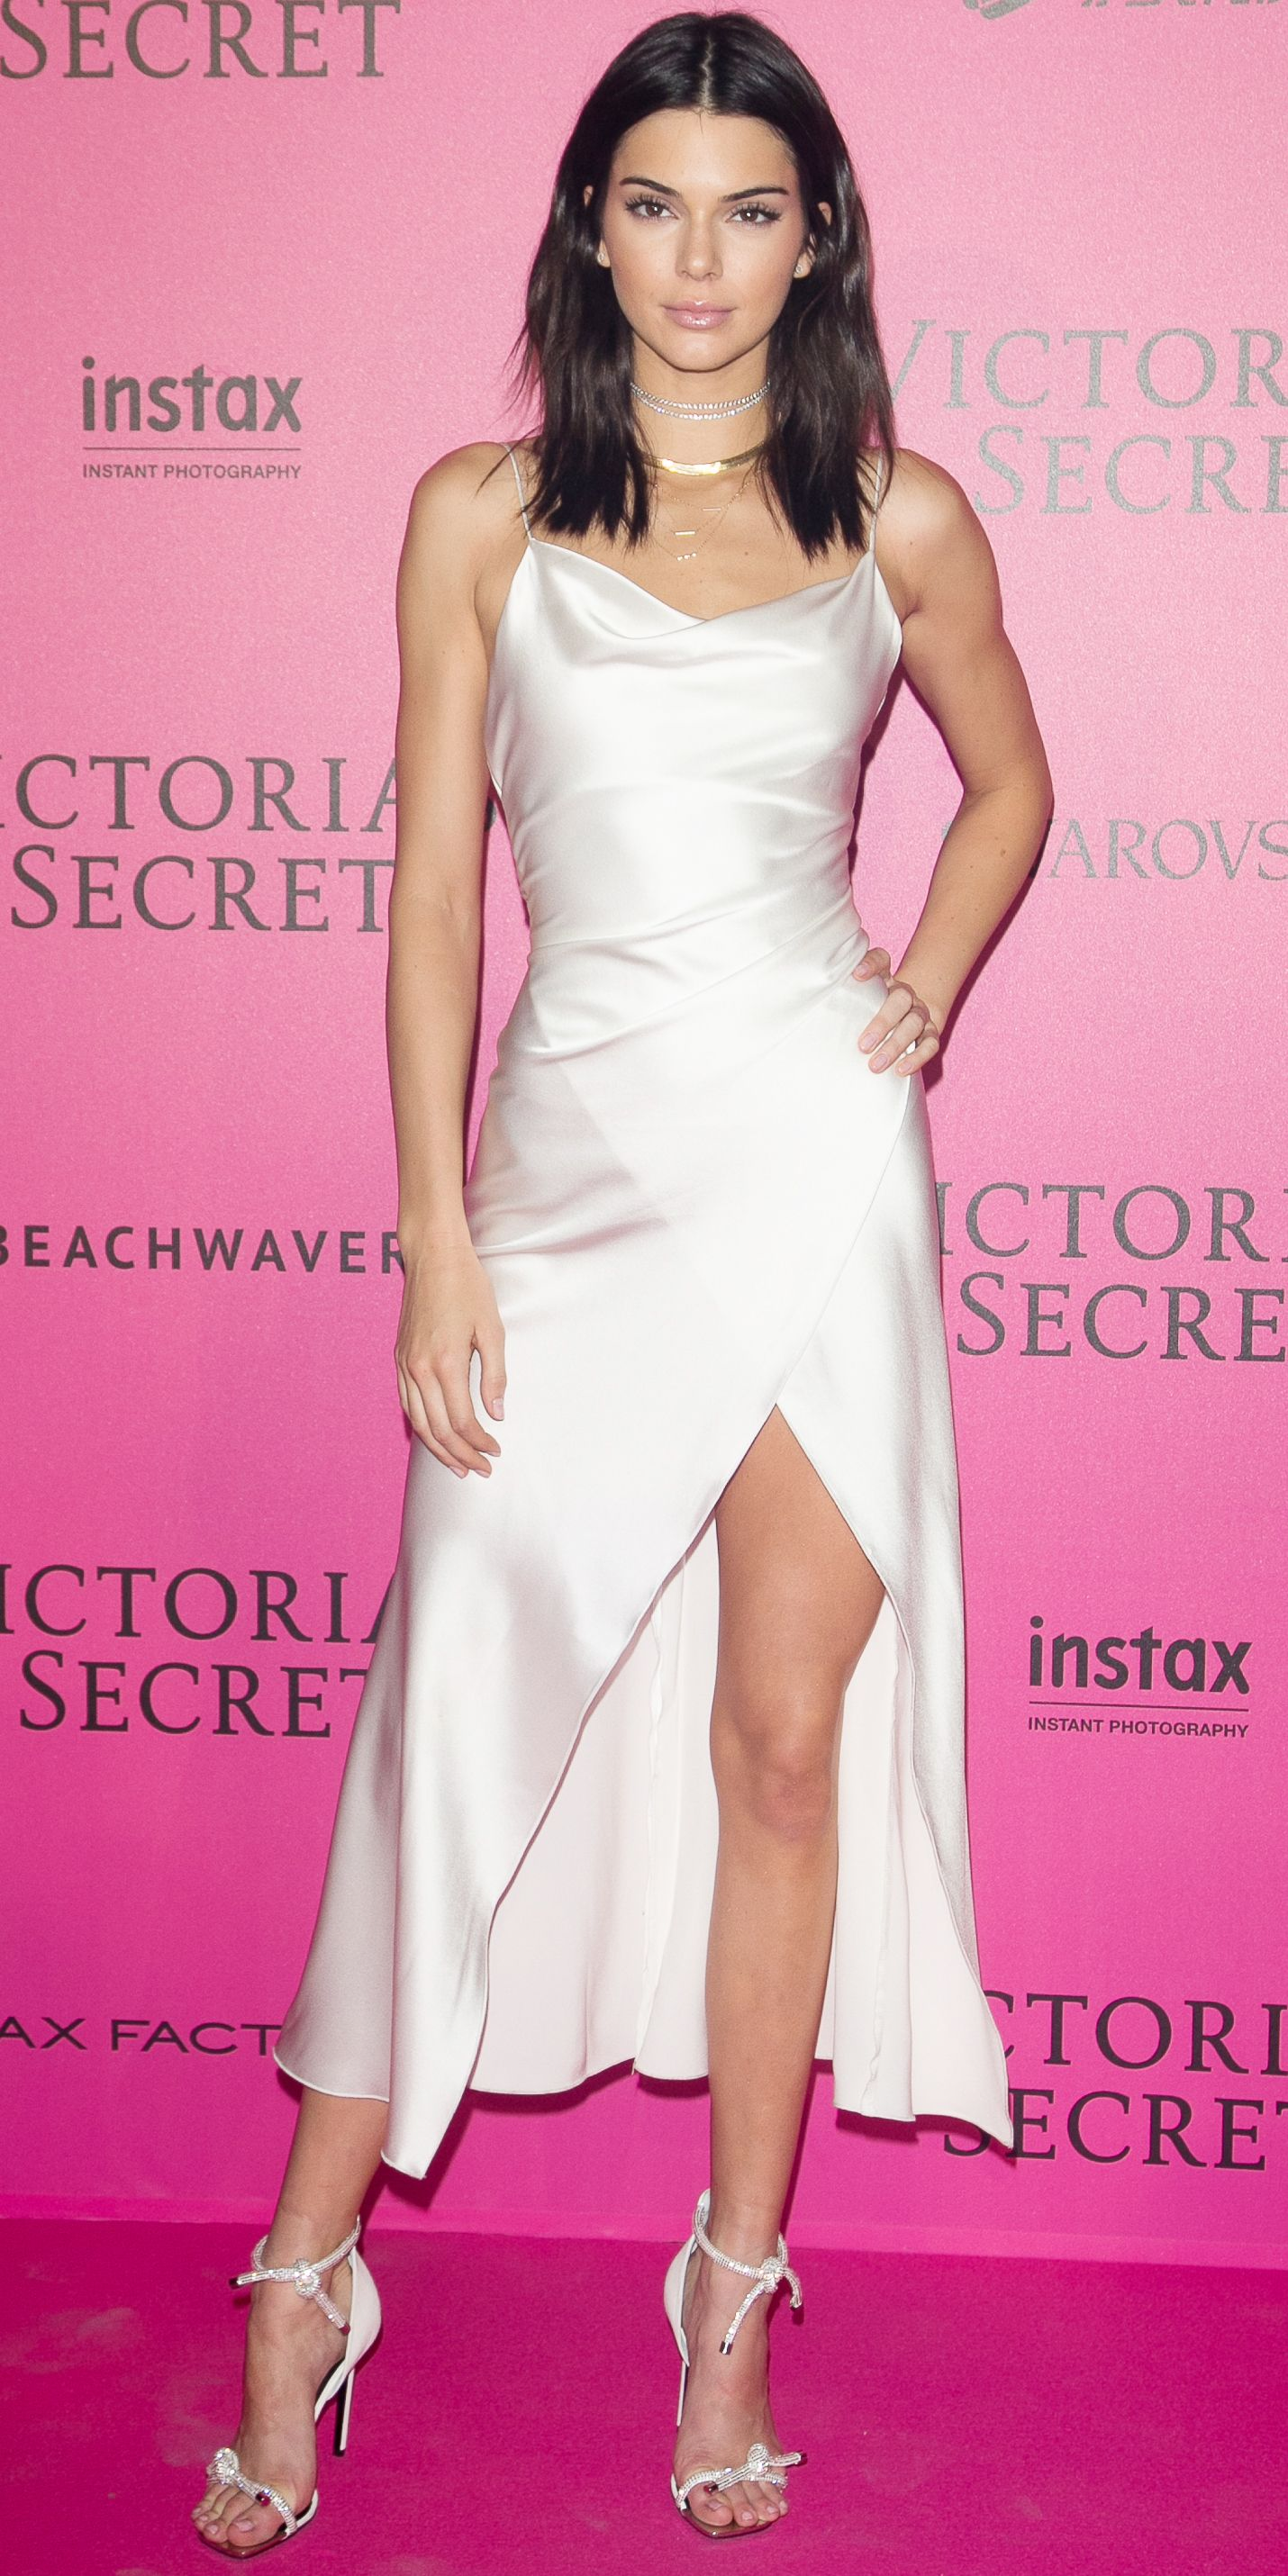 efb4fdf177 15 Jaw-Dropping Looks from the Victoria s Secret Fashion Show After-Party -  Kendall Jenner from InStyle.com